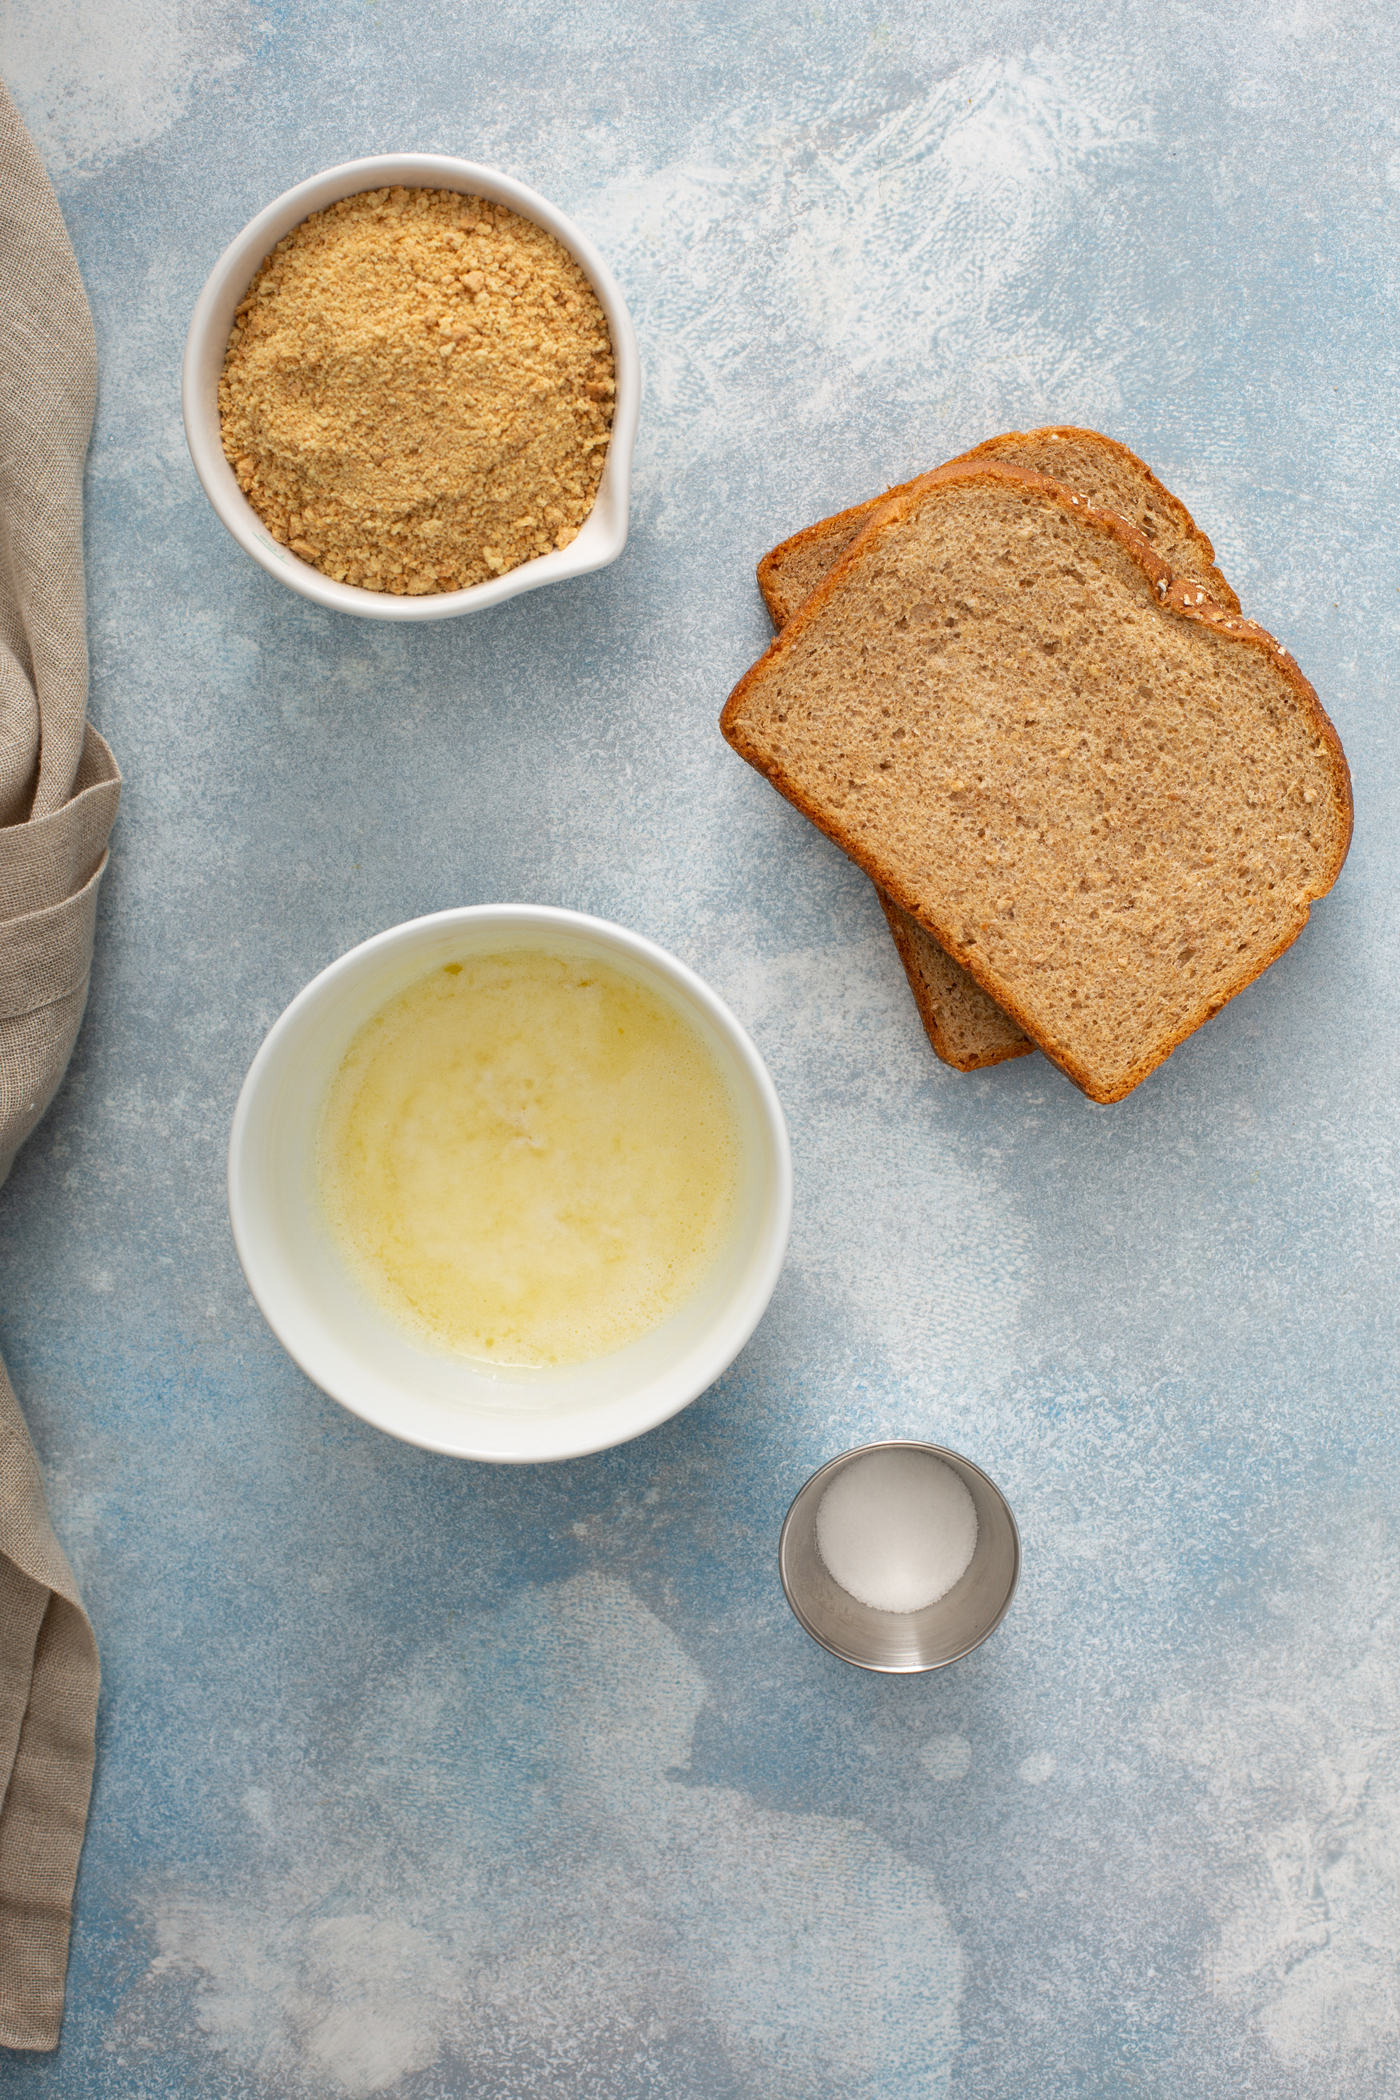 Two slices of brown bread, containers of melted butter, salt, cinnamon and sugar all sitting on a table top.